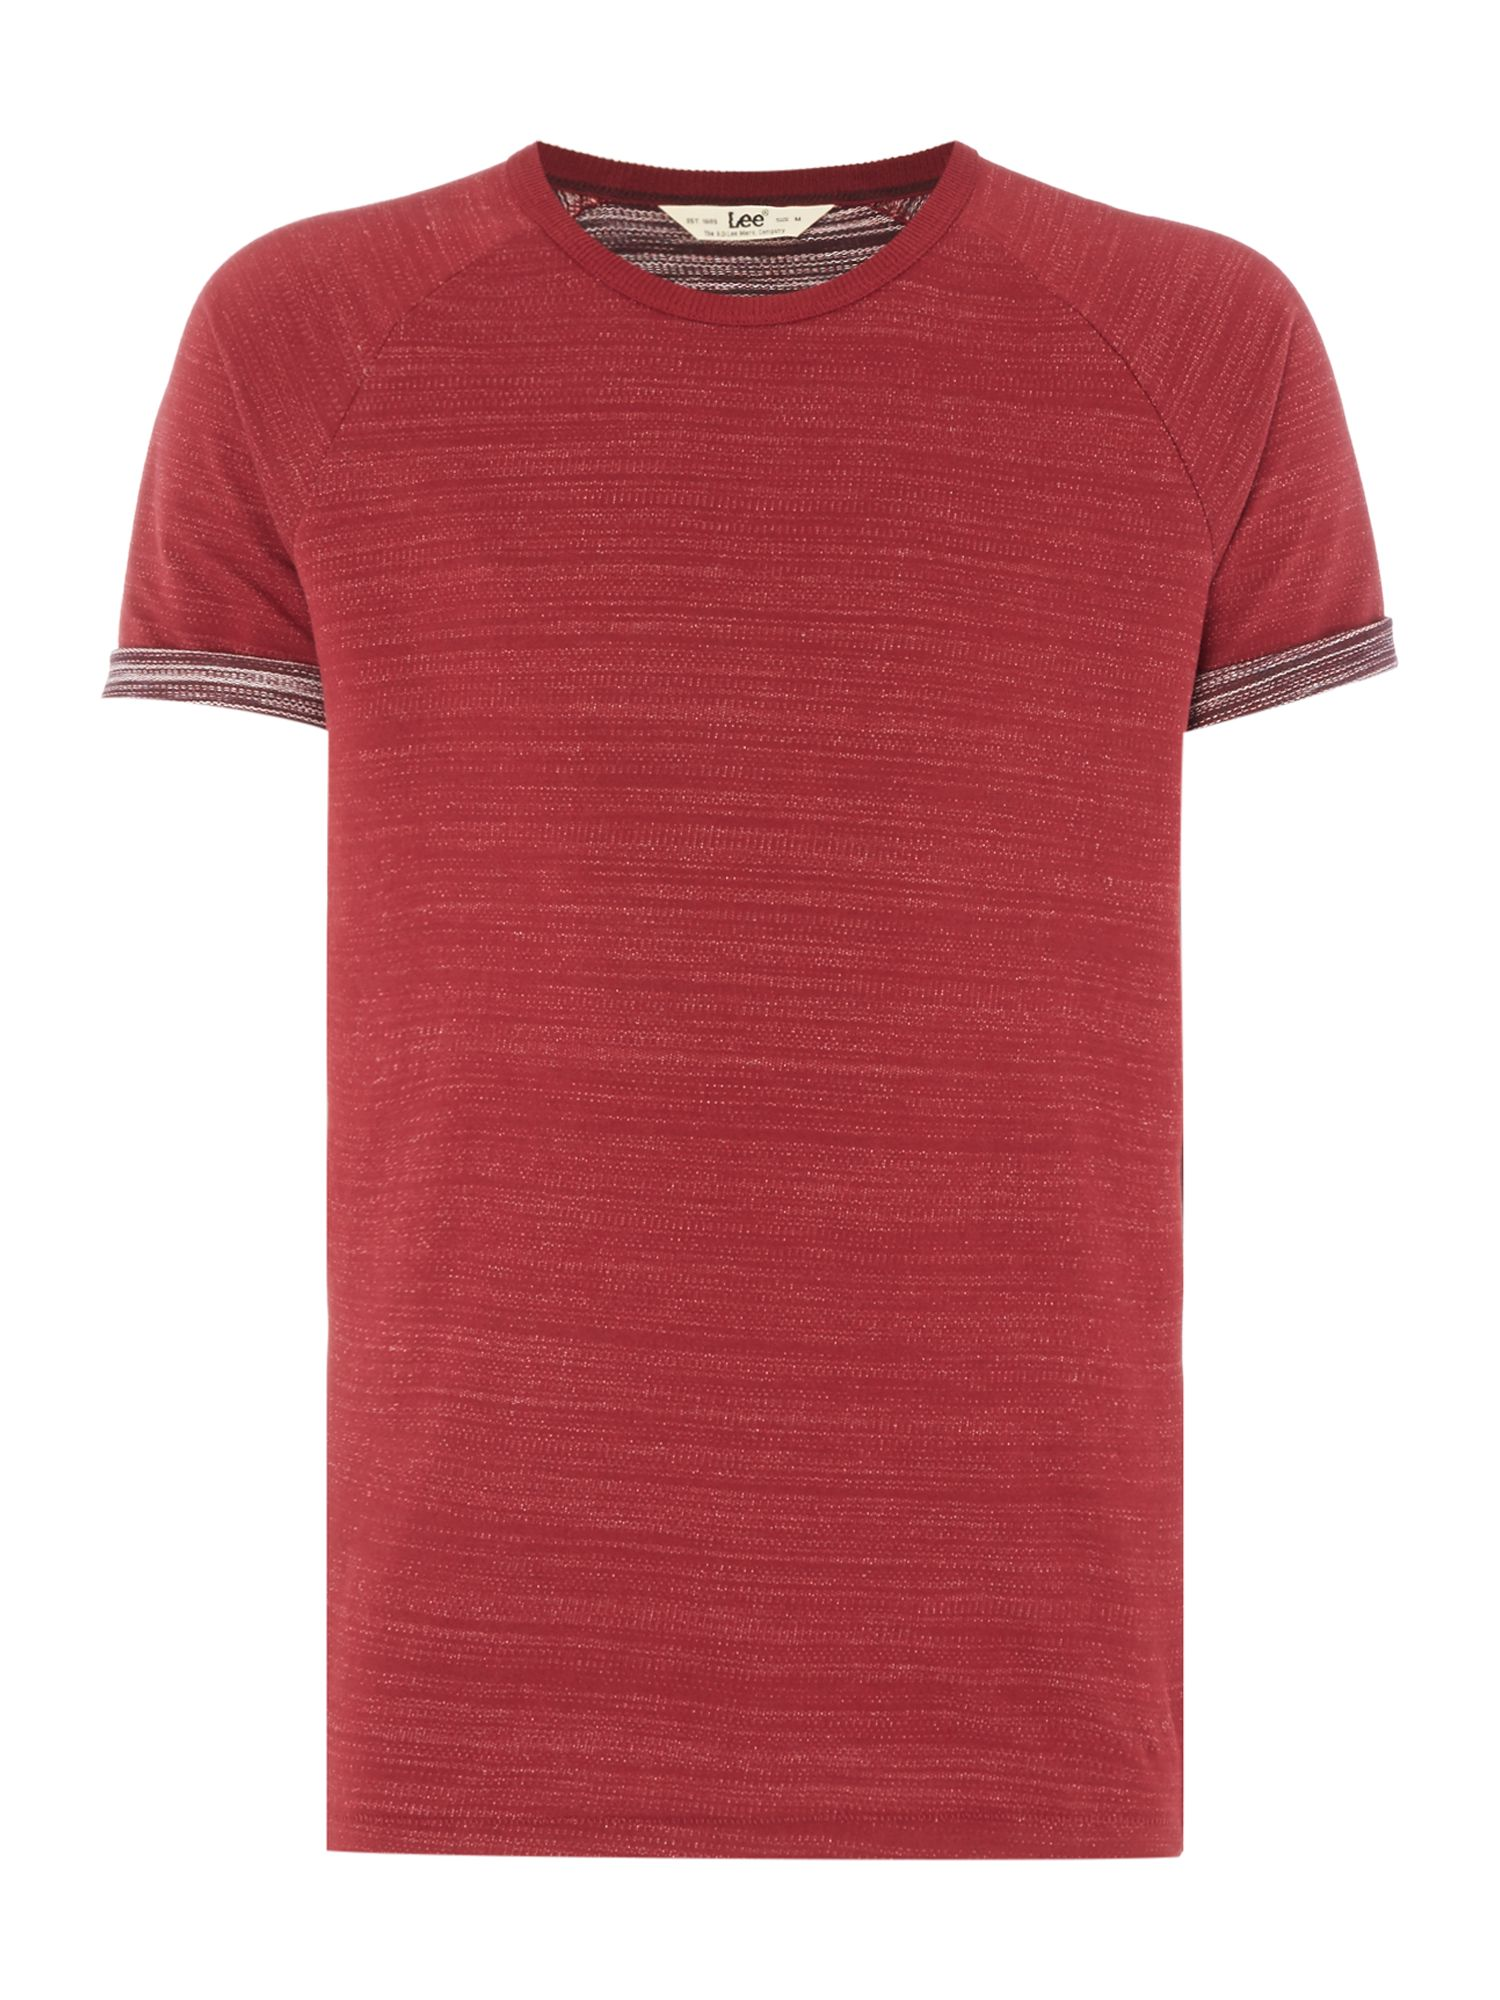 Men's Lee Turn-up sleeve raglan t-shirt, Dark Red